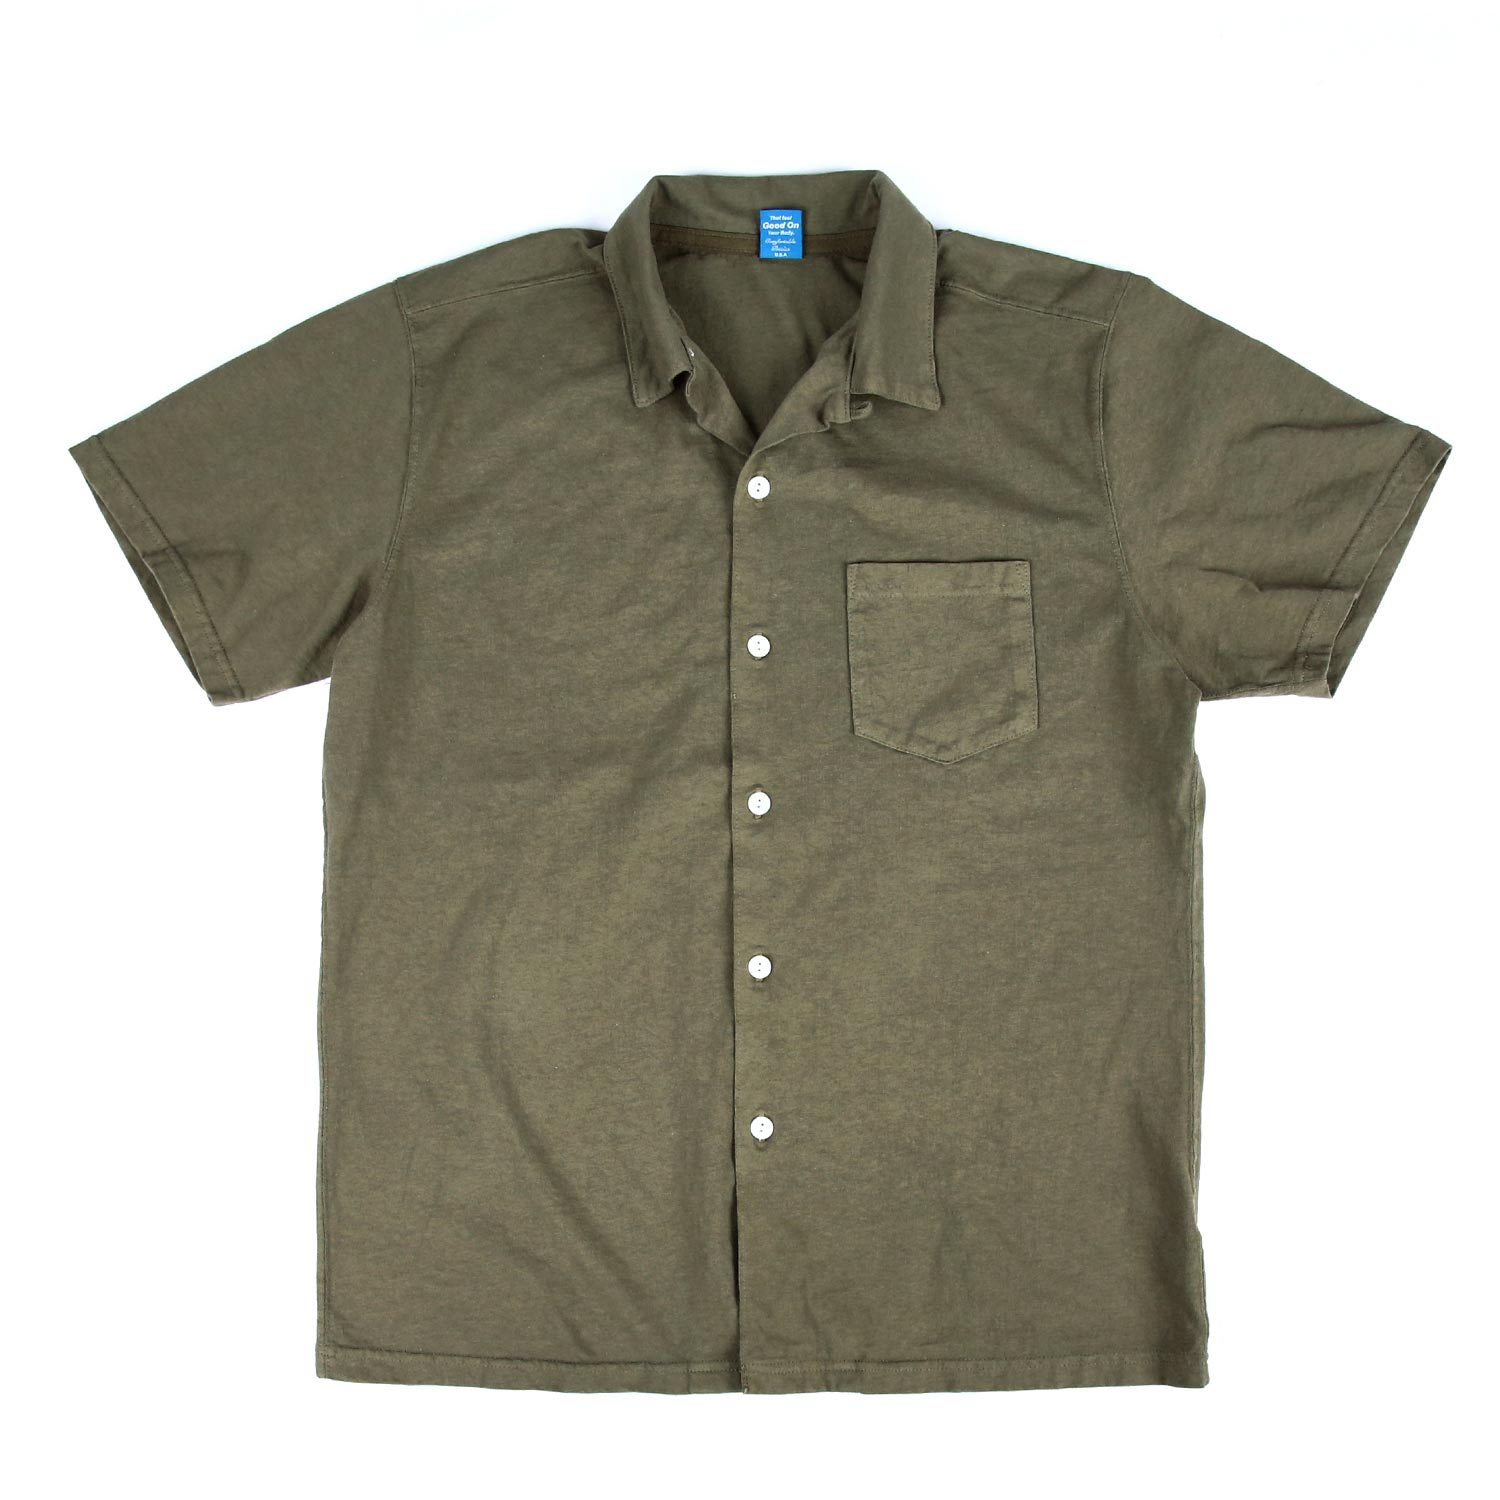 SS Open Tee Shirts - Olive